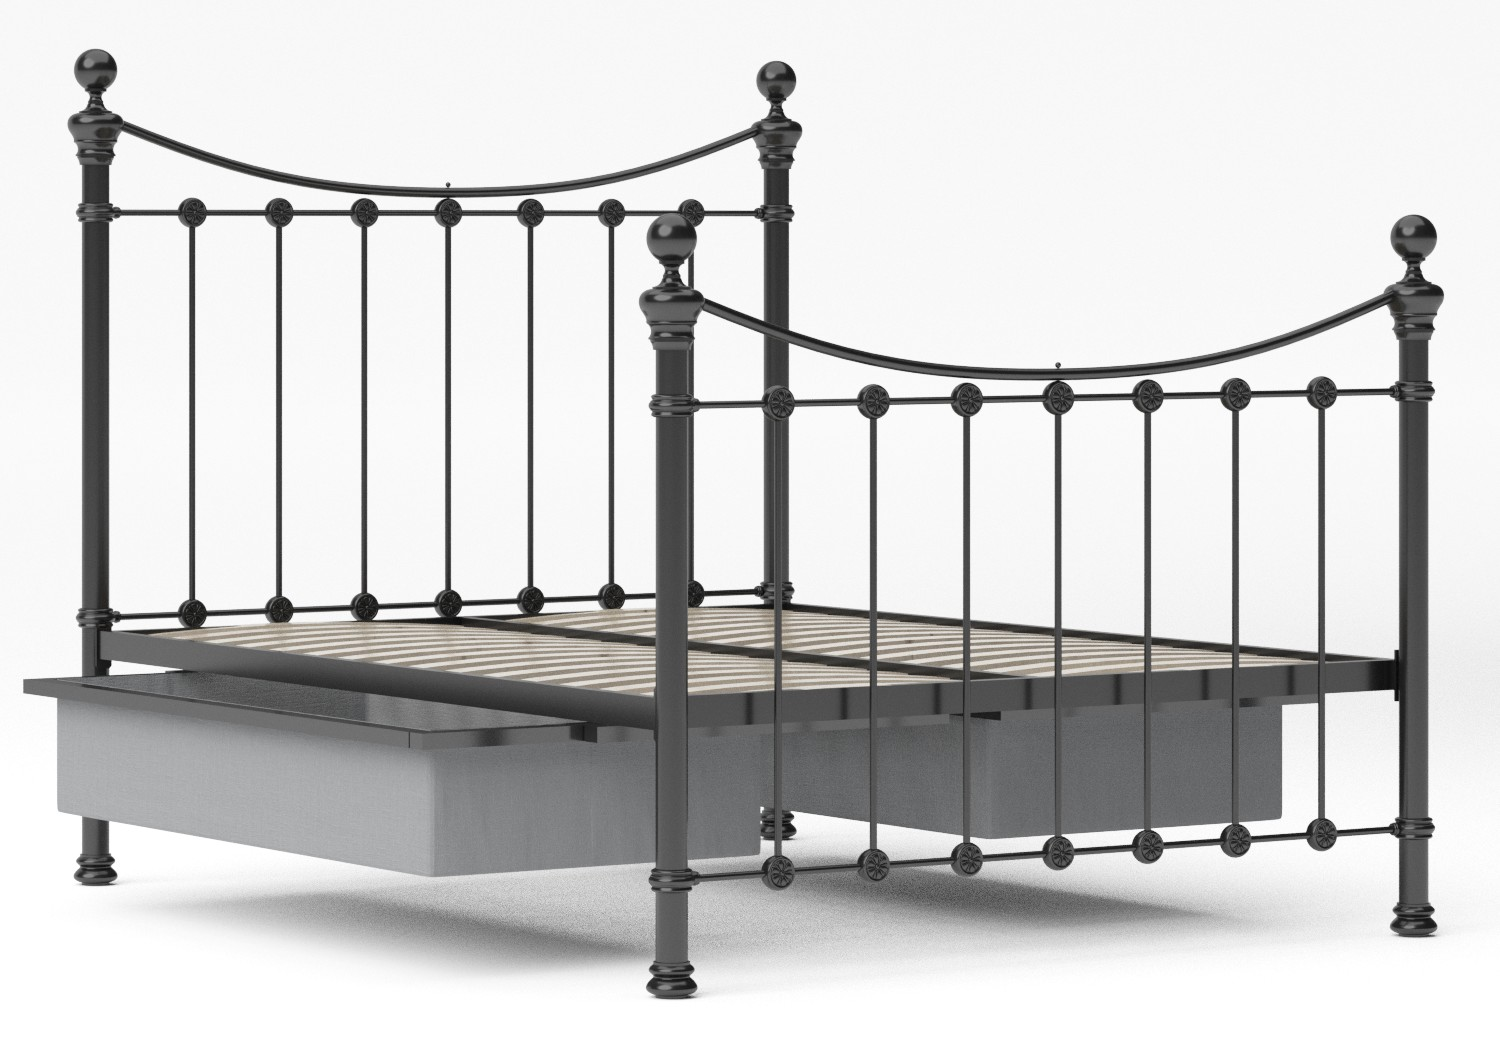 Selkirk Iron/Metal Bed in Satin Black with Black painted details shown with underbed storage